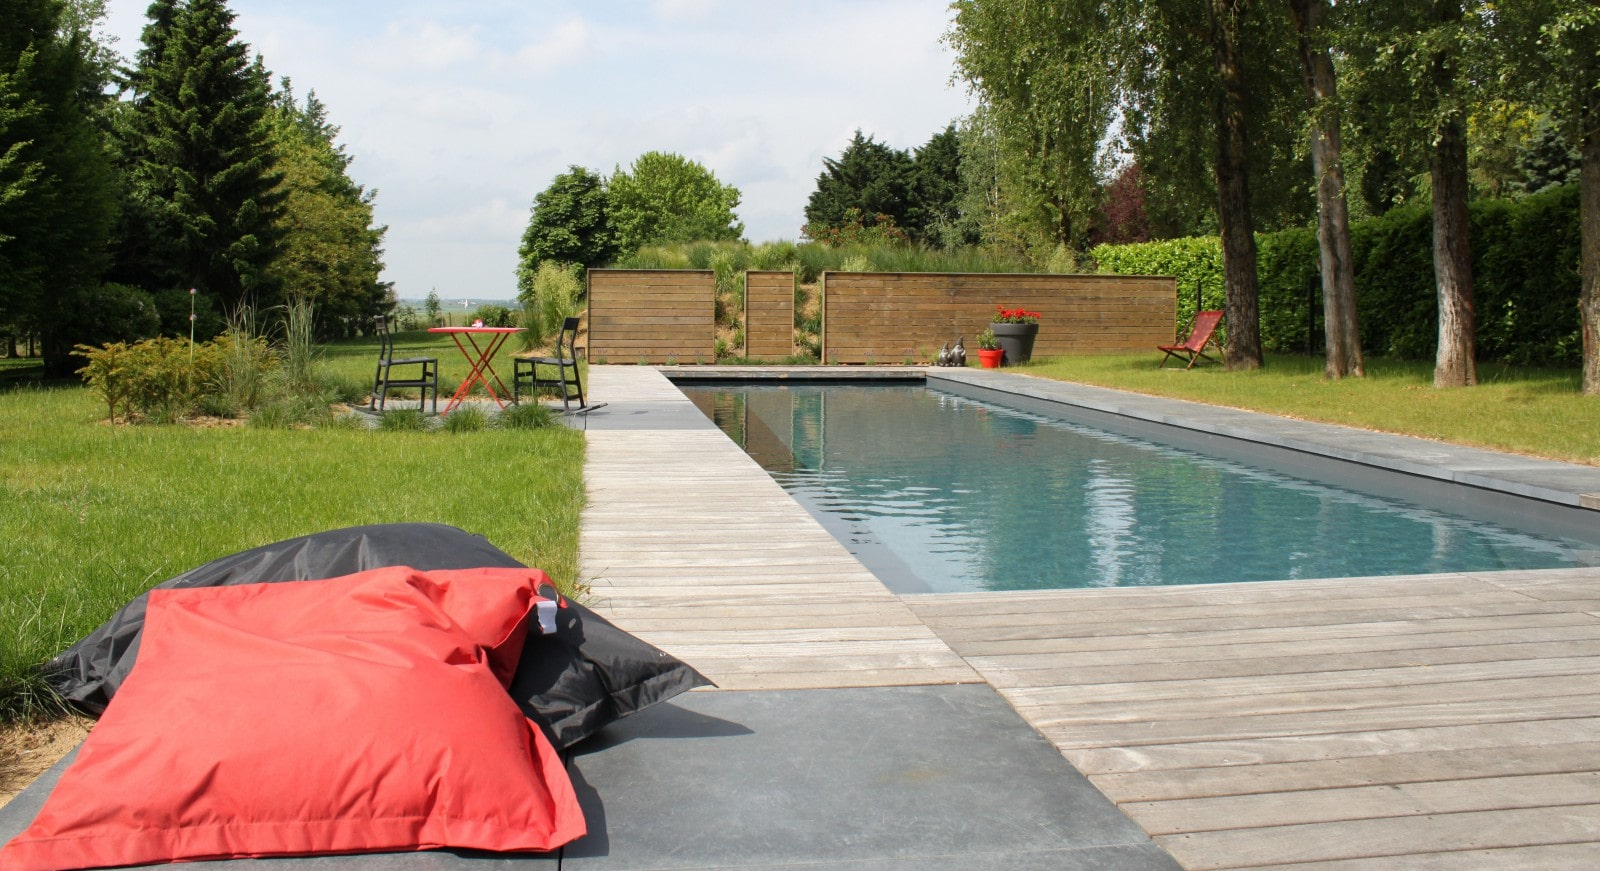 Am nagement abords de piscines et spas home ext rieur for Abords de piscine